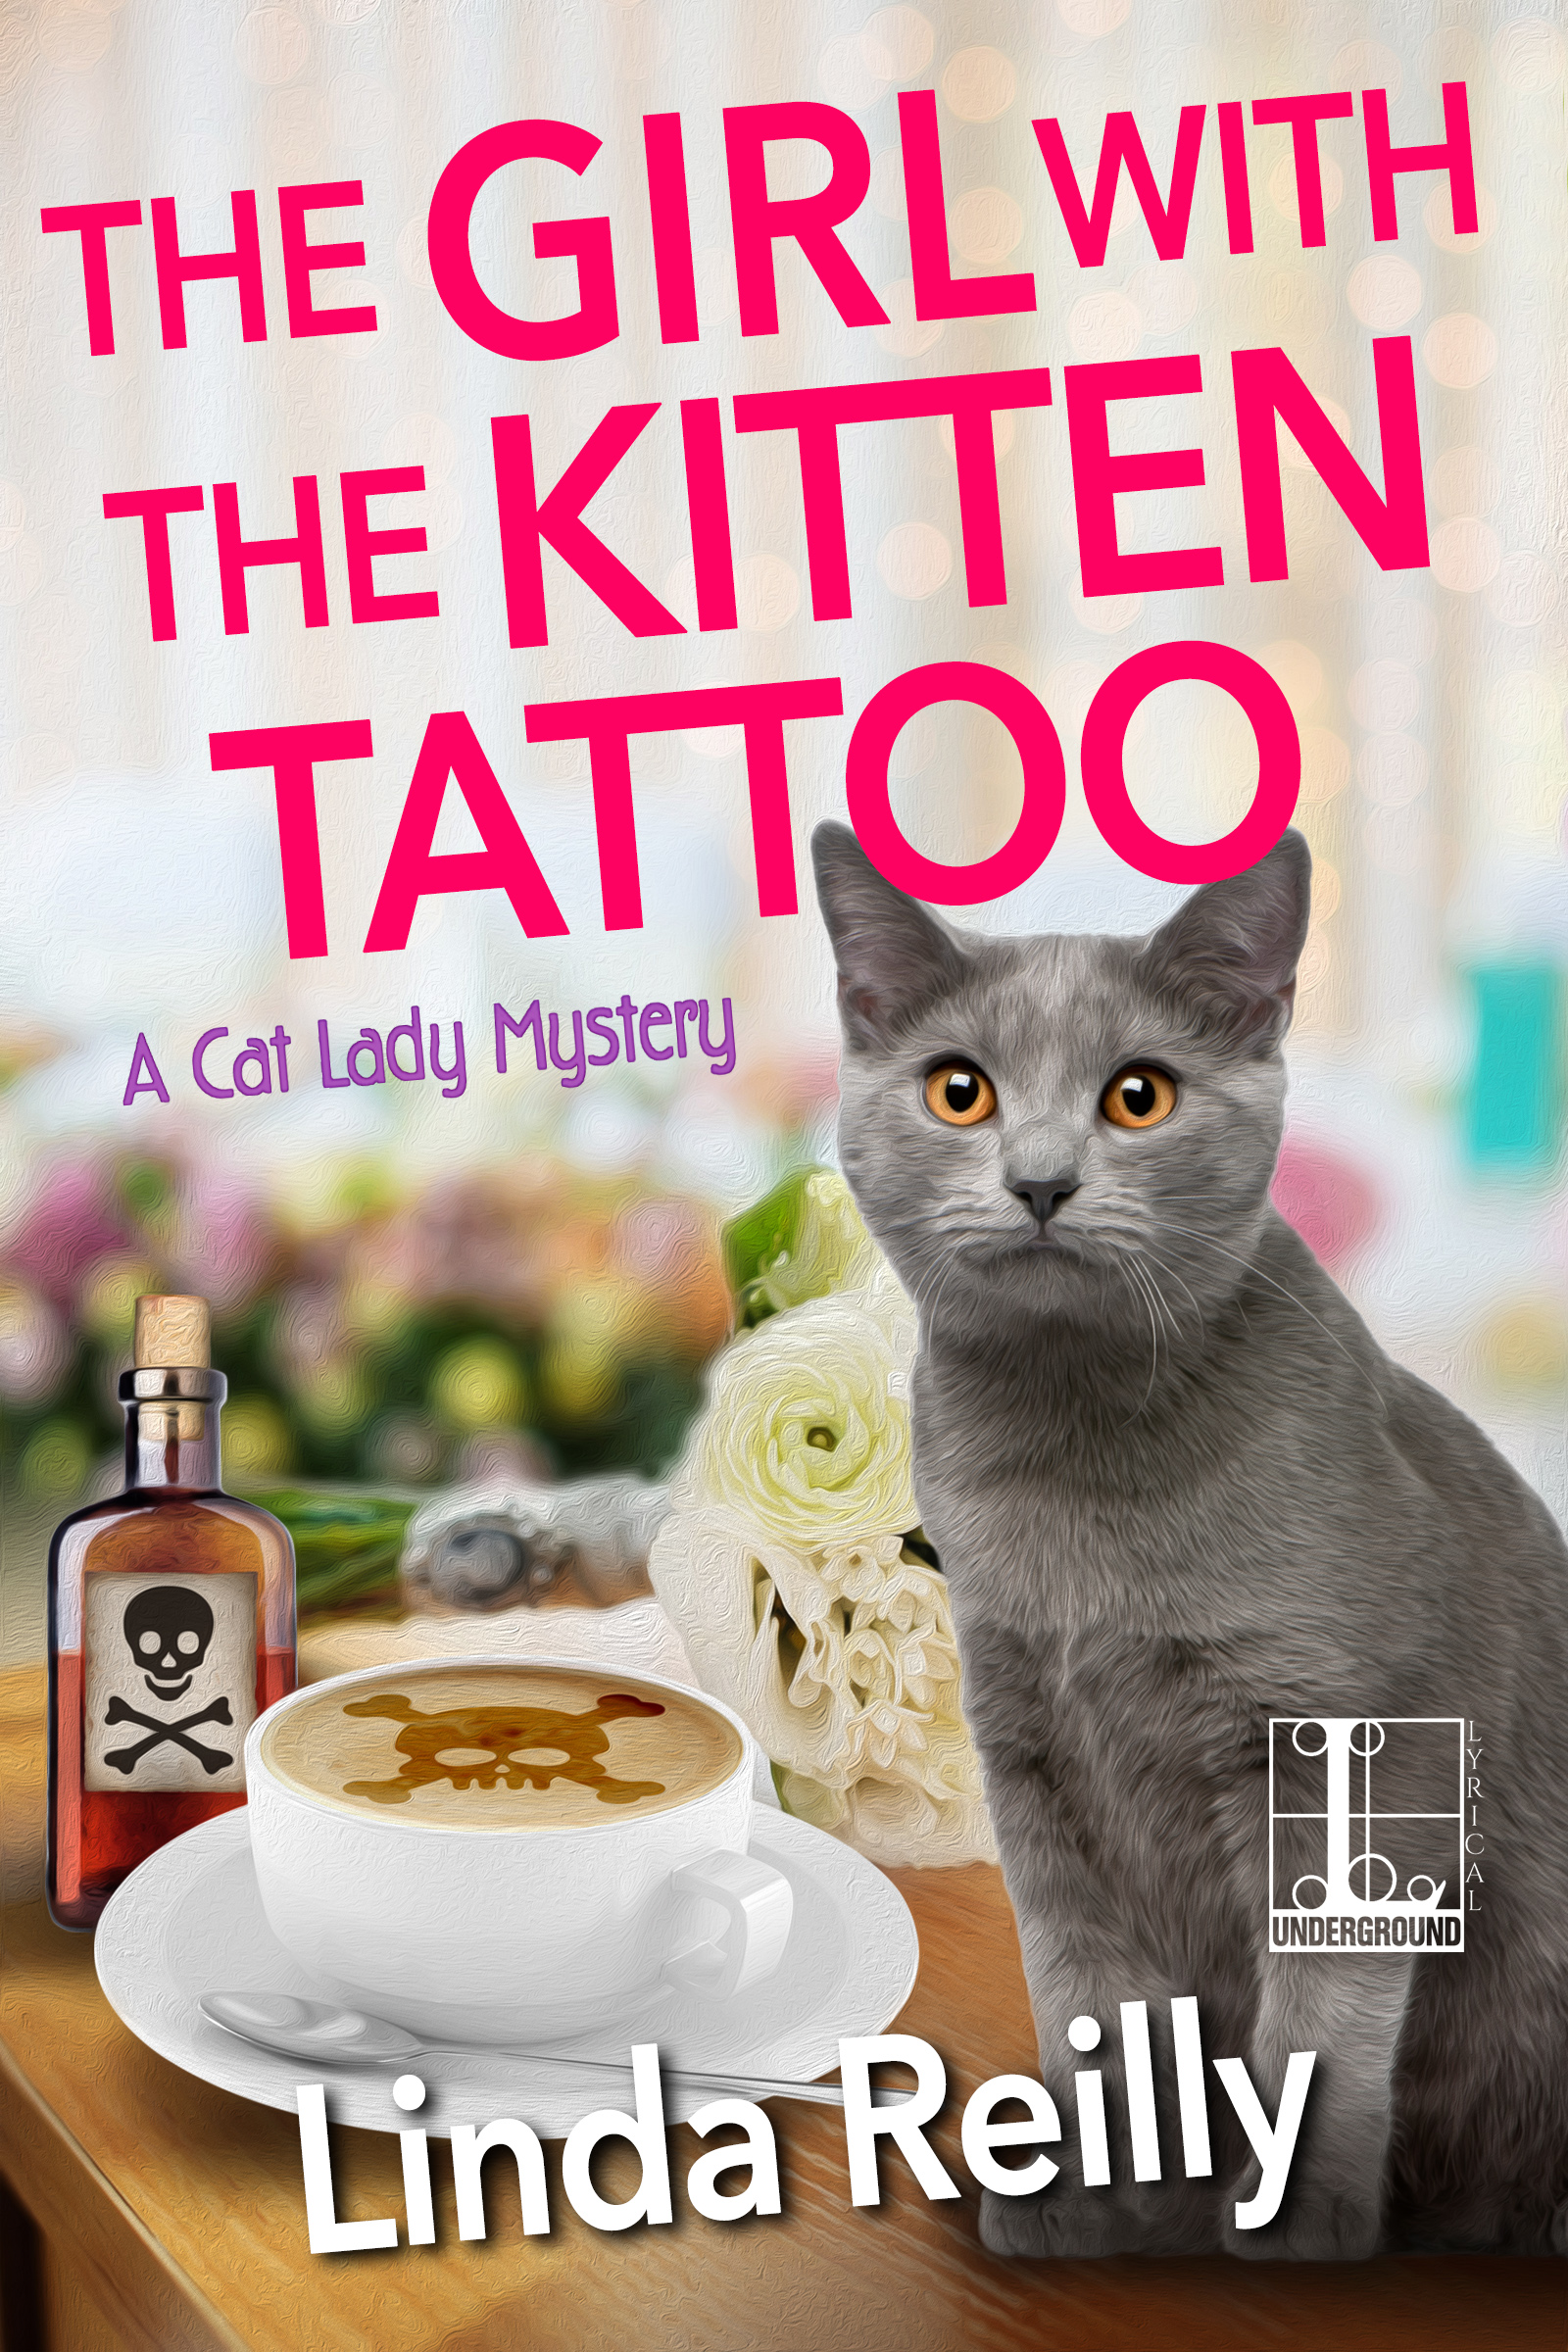 The Girl with the Kitten Tattoo by Linda Reilly